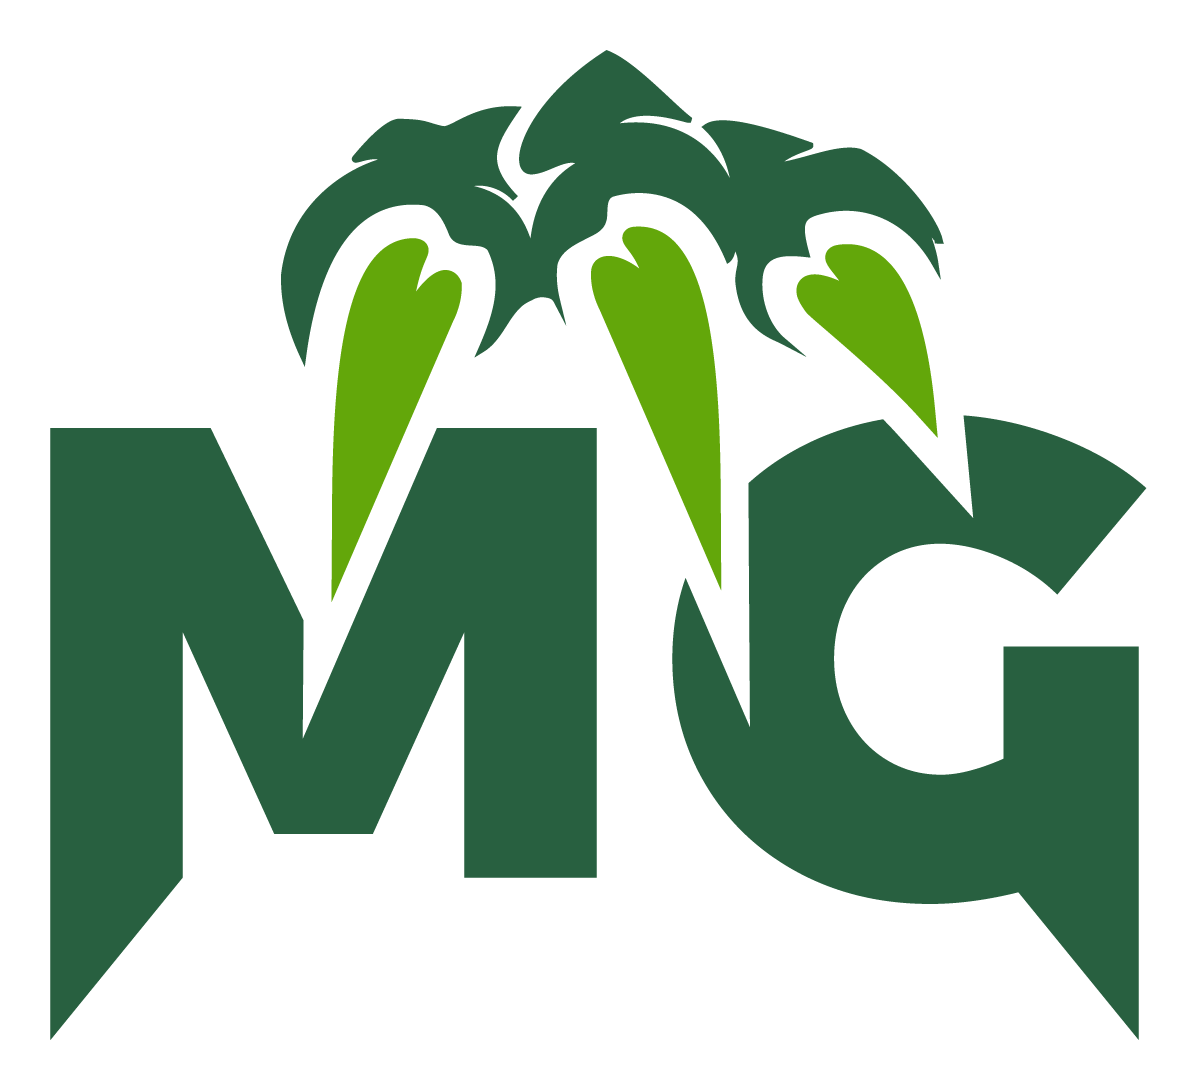 MeanGreenLogoMGClawDkGreen (2).png